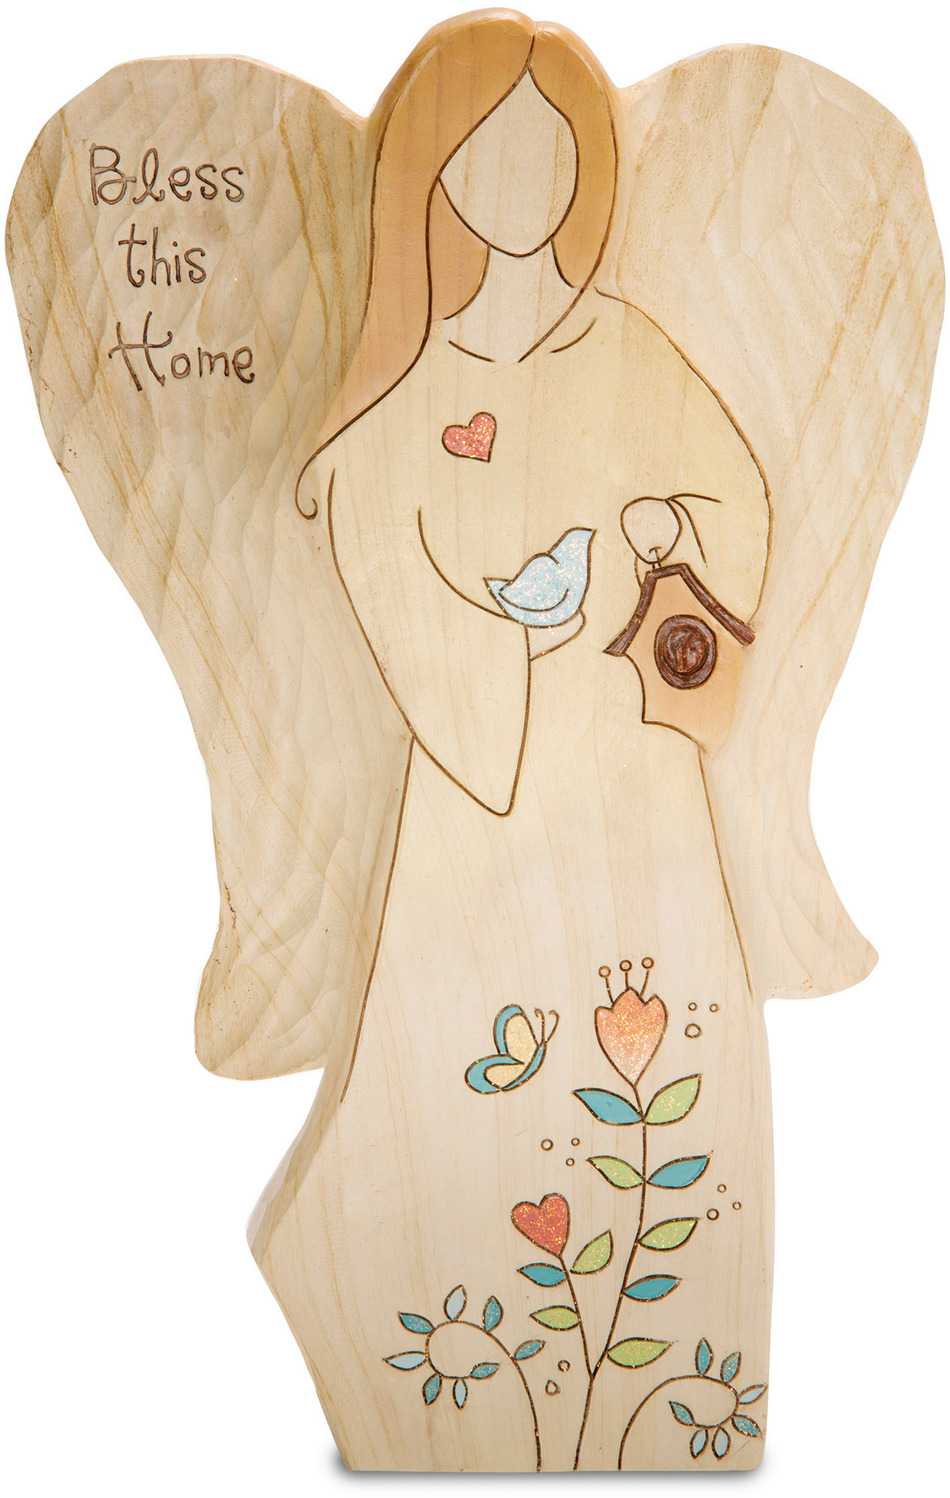 Bless this Home by Heavenly Woods - <em>Home</em> - Angel Figurine, 7 in -